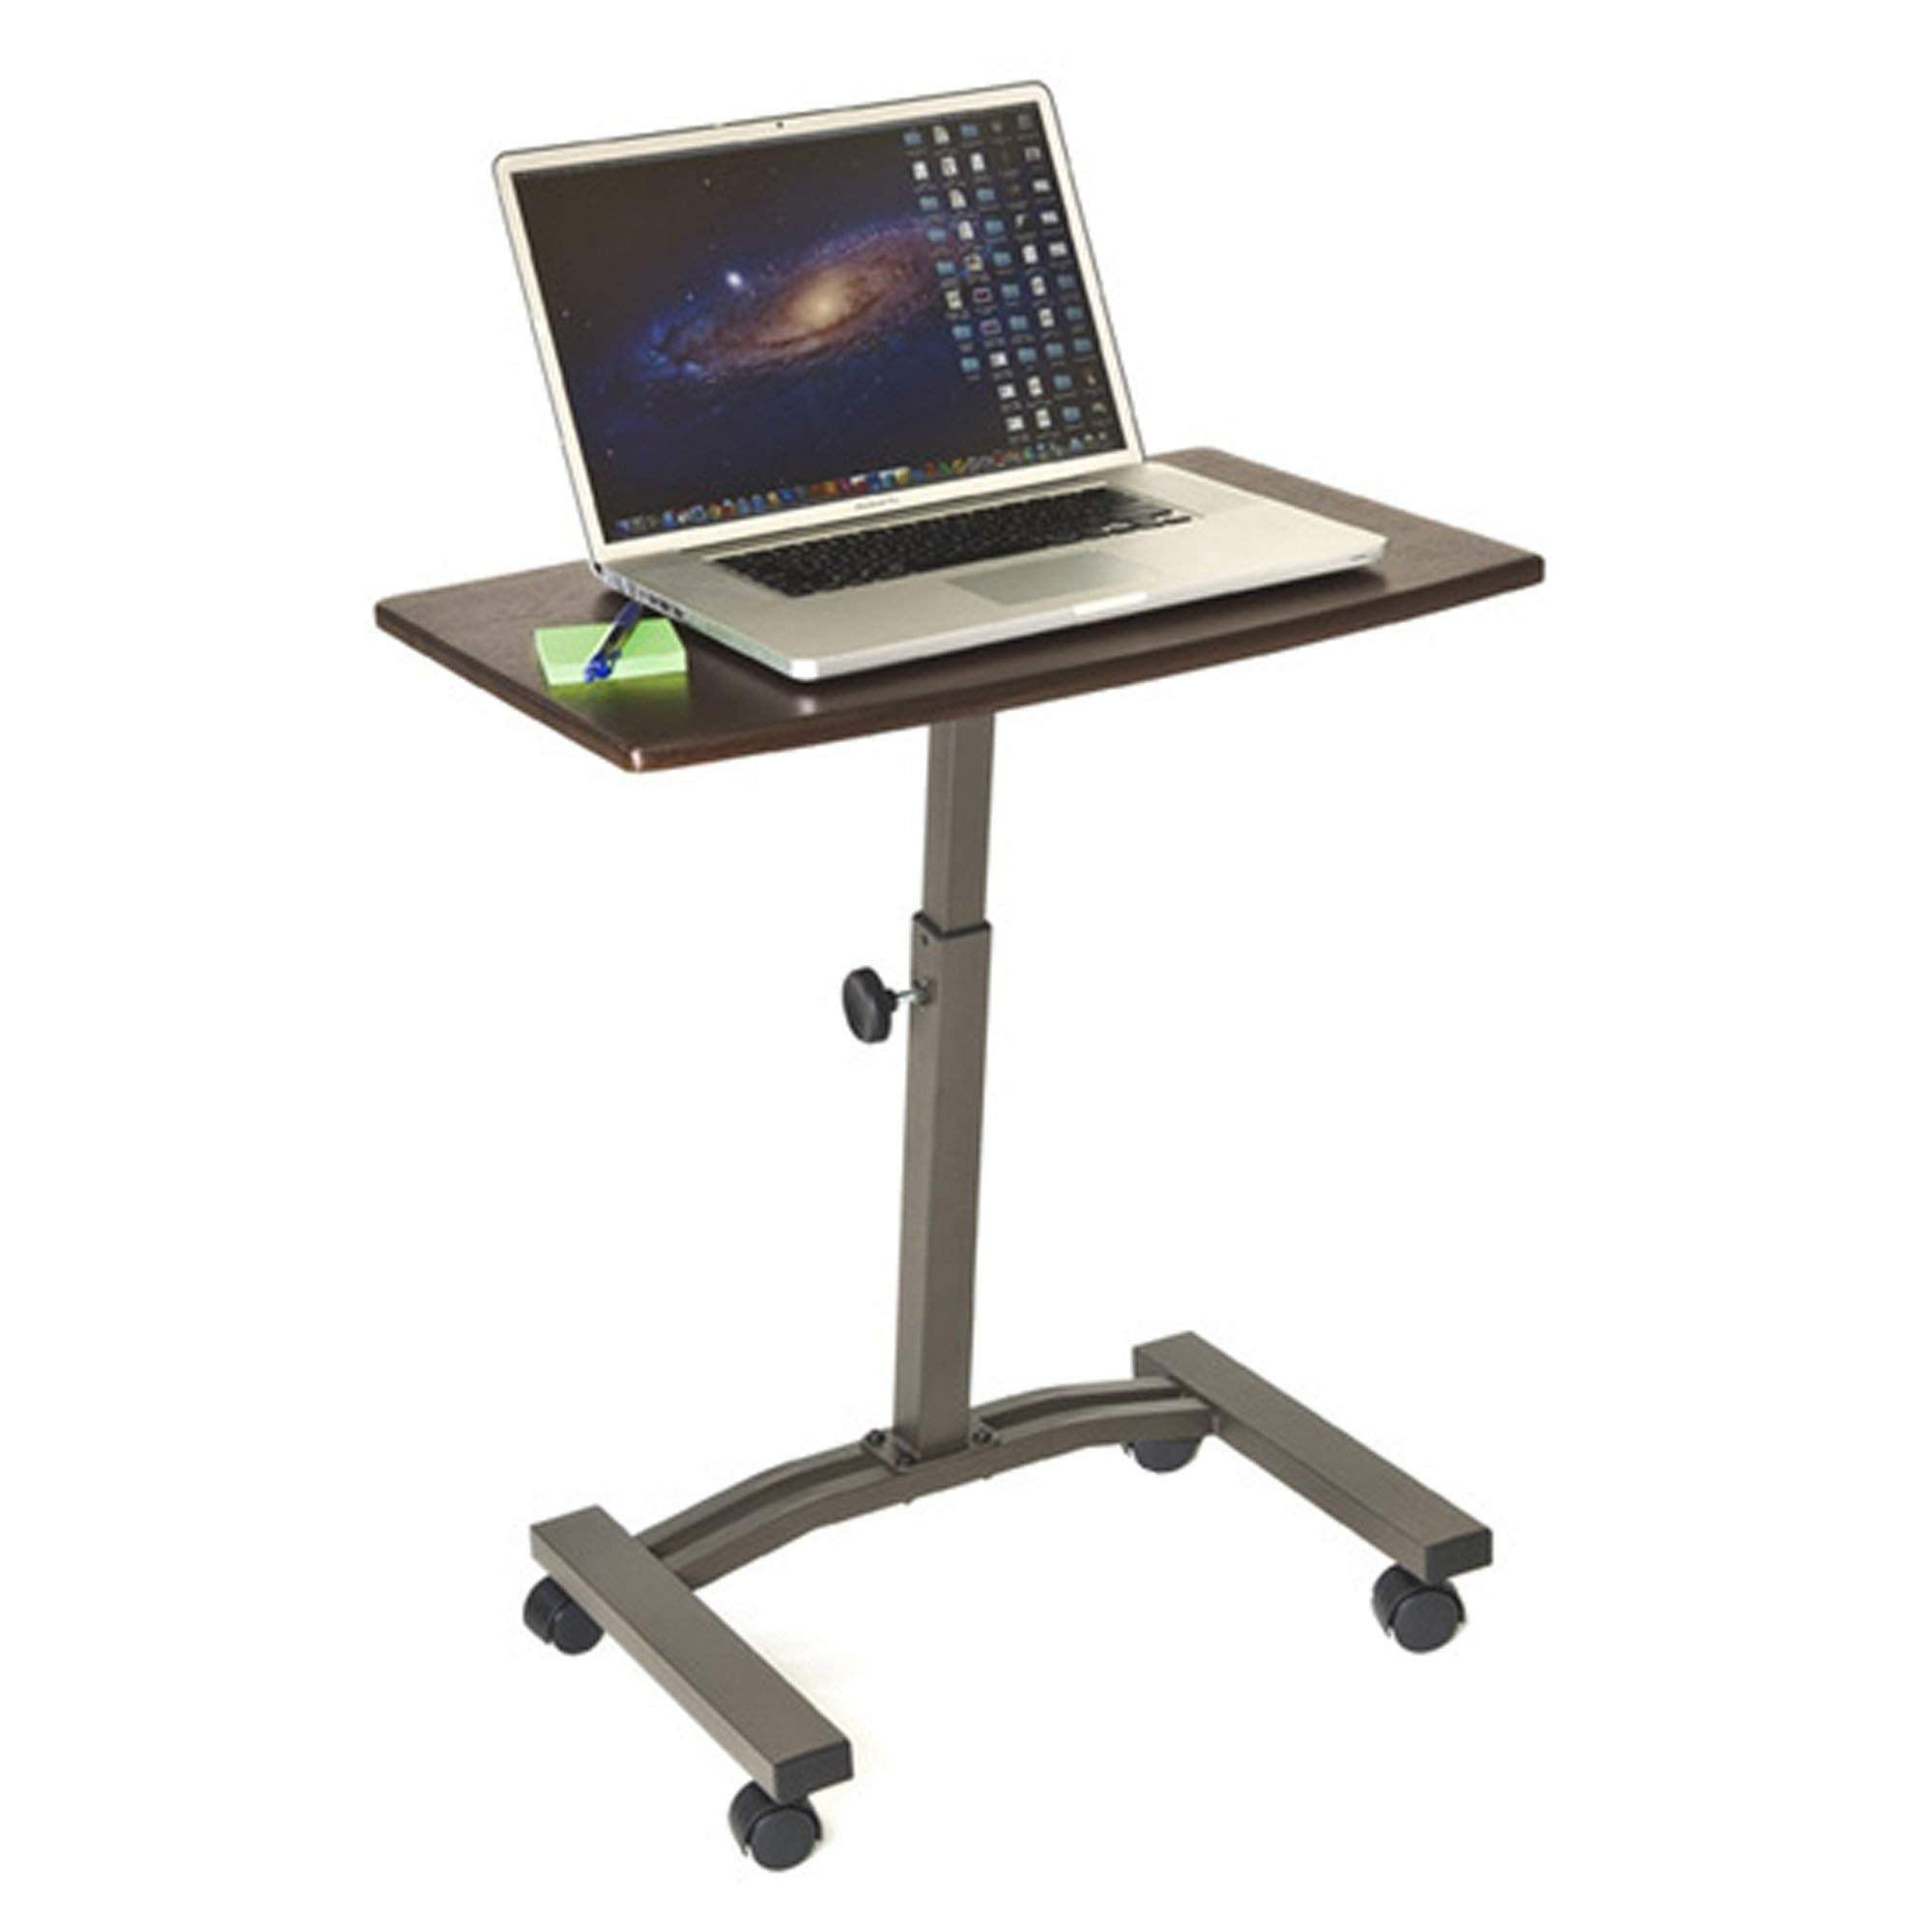 Seville Classics Mobile Laptop Computer Desk Cart Height-Adjustable from 20.5in to 33in, Slim, Walnut (Renewed)